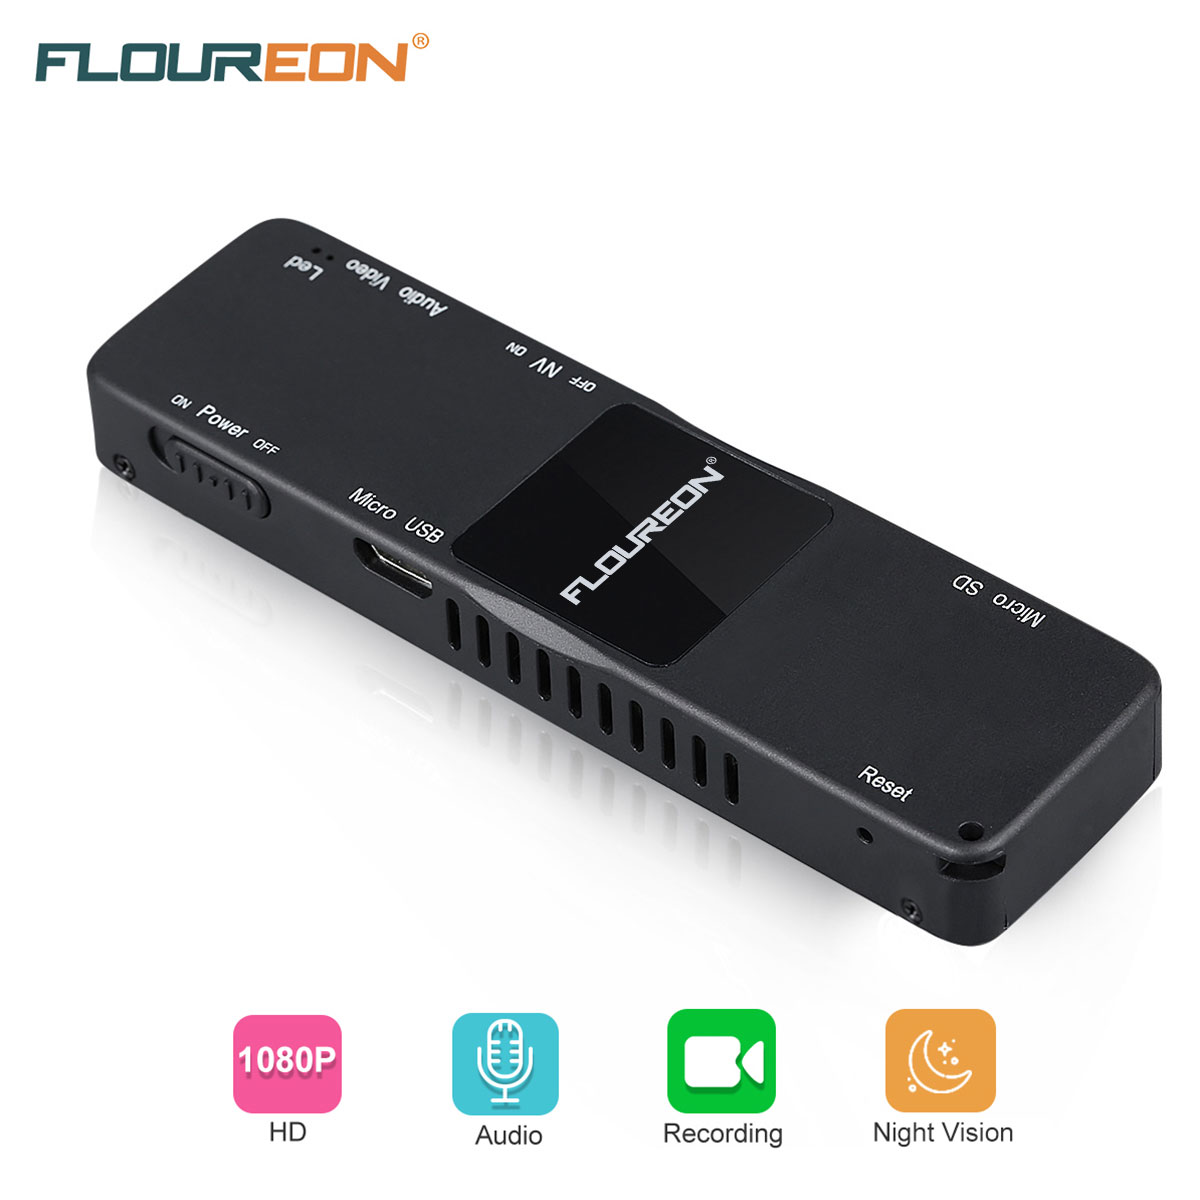 FLOUREON Mini Camera 2.0 Mega Pixels Portable 1080P DV Recorder With Night Vision Video Audio Recording Motion Detection Recorder PC Web Camera,Black